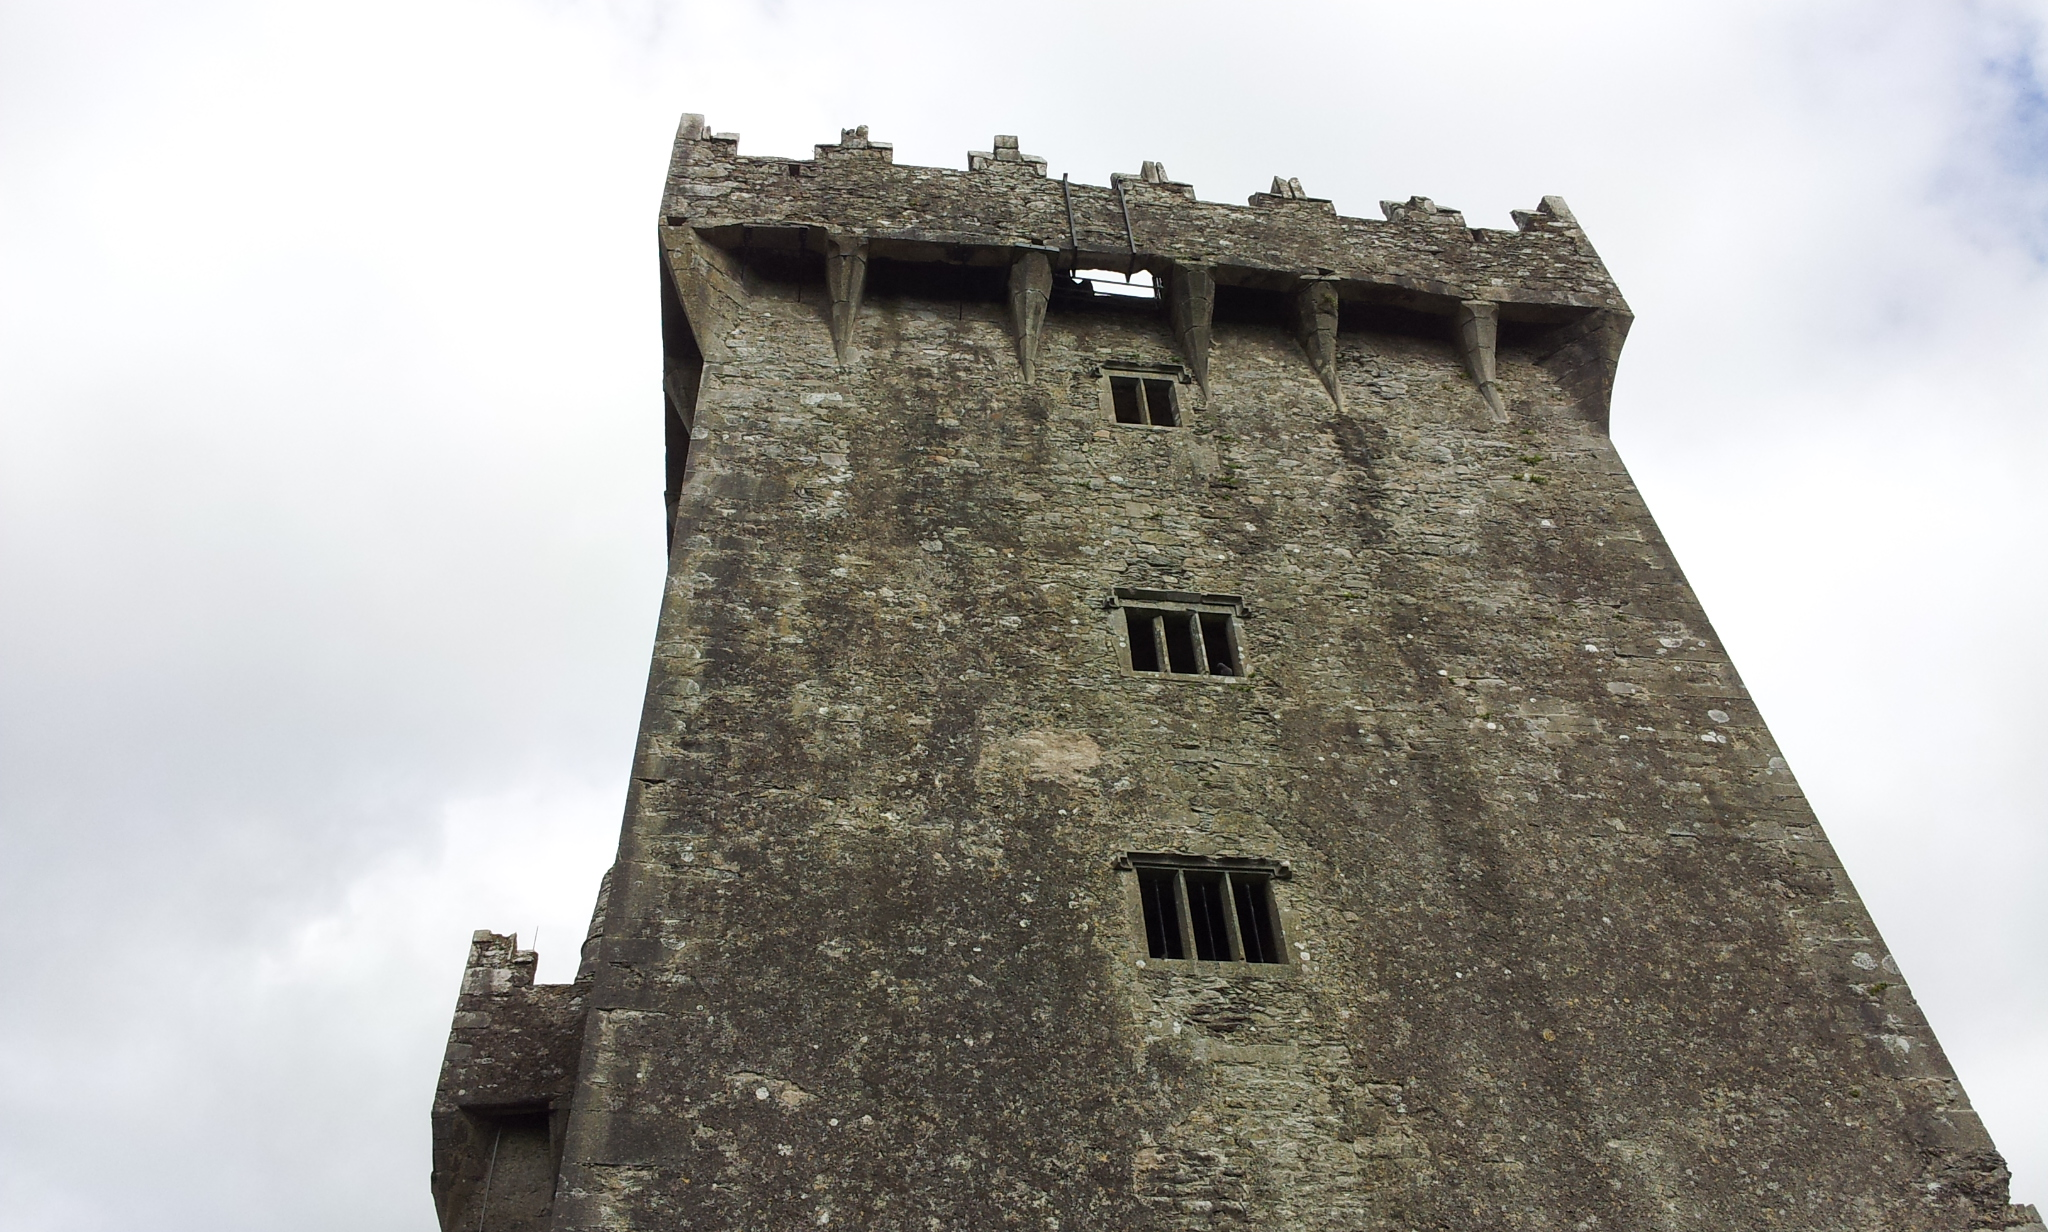 Looking up at the Blarney Stone, just five miles from Cork.